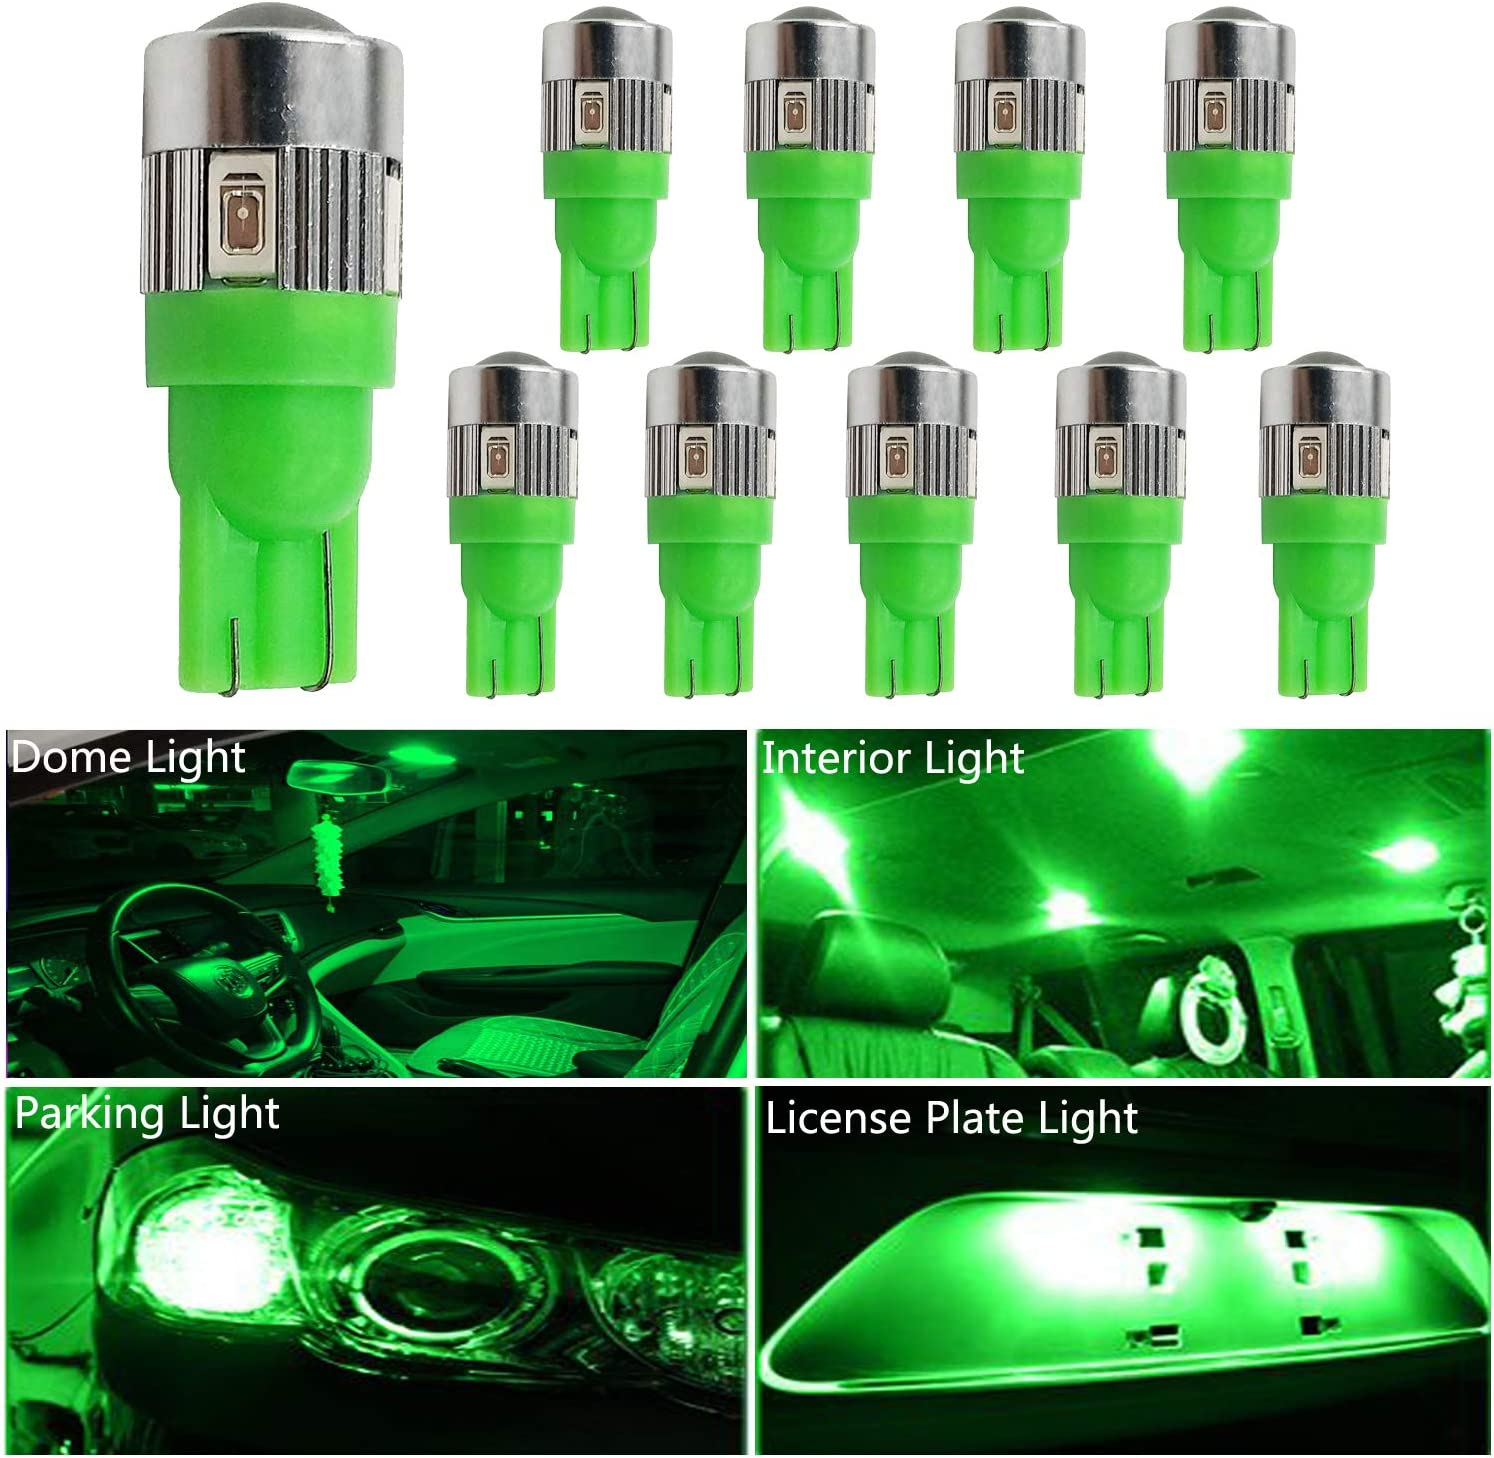 HOCOLO 10x T10 198 194 168 912 921 W5W 2825 Green Color Color High Power LED Bulbs For Interior Dome/Map/License Plate/Parking/Door/Trunk Lights (10pcs T10 6-SMD, Green)